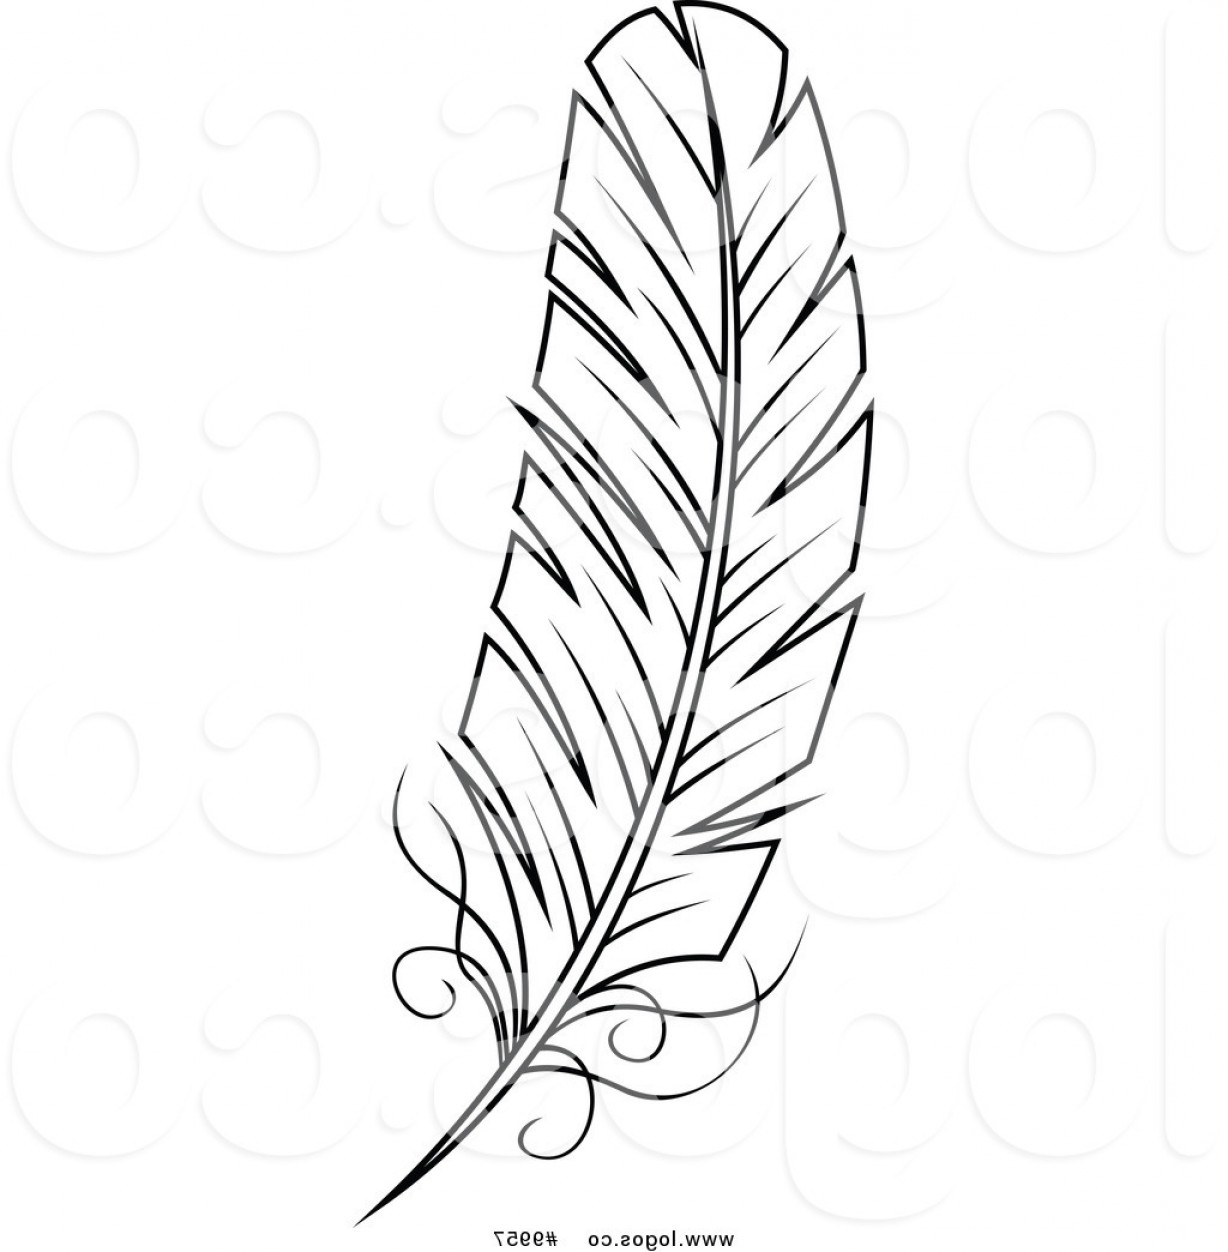 Feather clipart images black and white picture transparent stock Royalty Free Clip Art Vector Black And White Feather Logo By Vector ... picture transparent stock